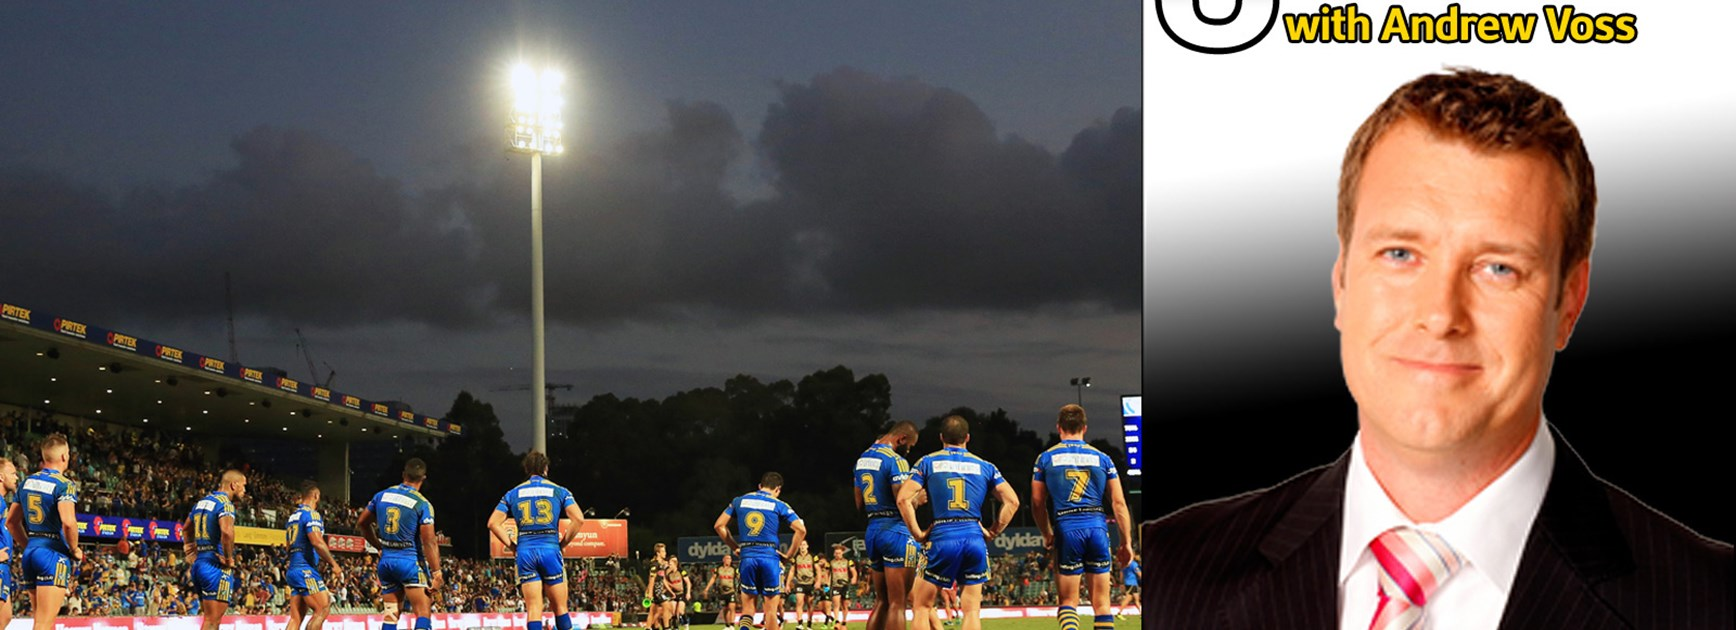 Andrew Voss says the NRL's punishment of the Eels was fair, but that they can still make the finals in 2016.